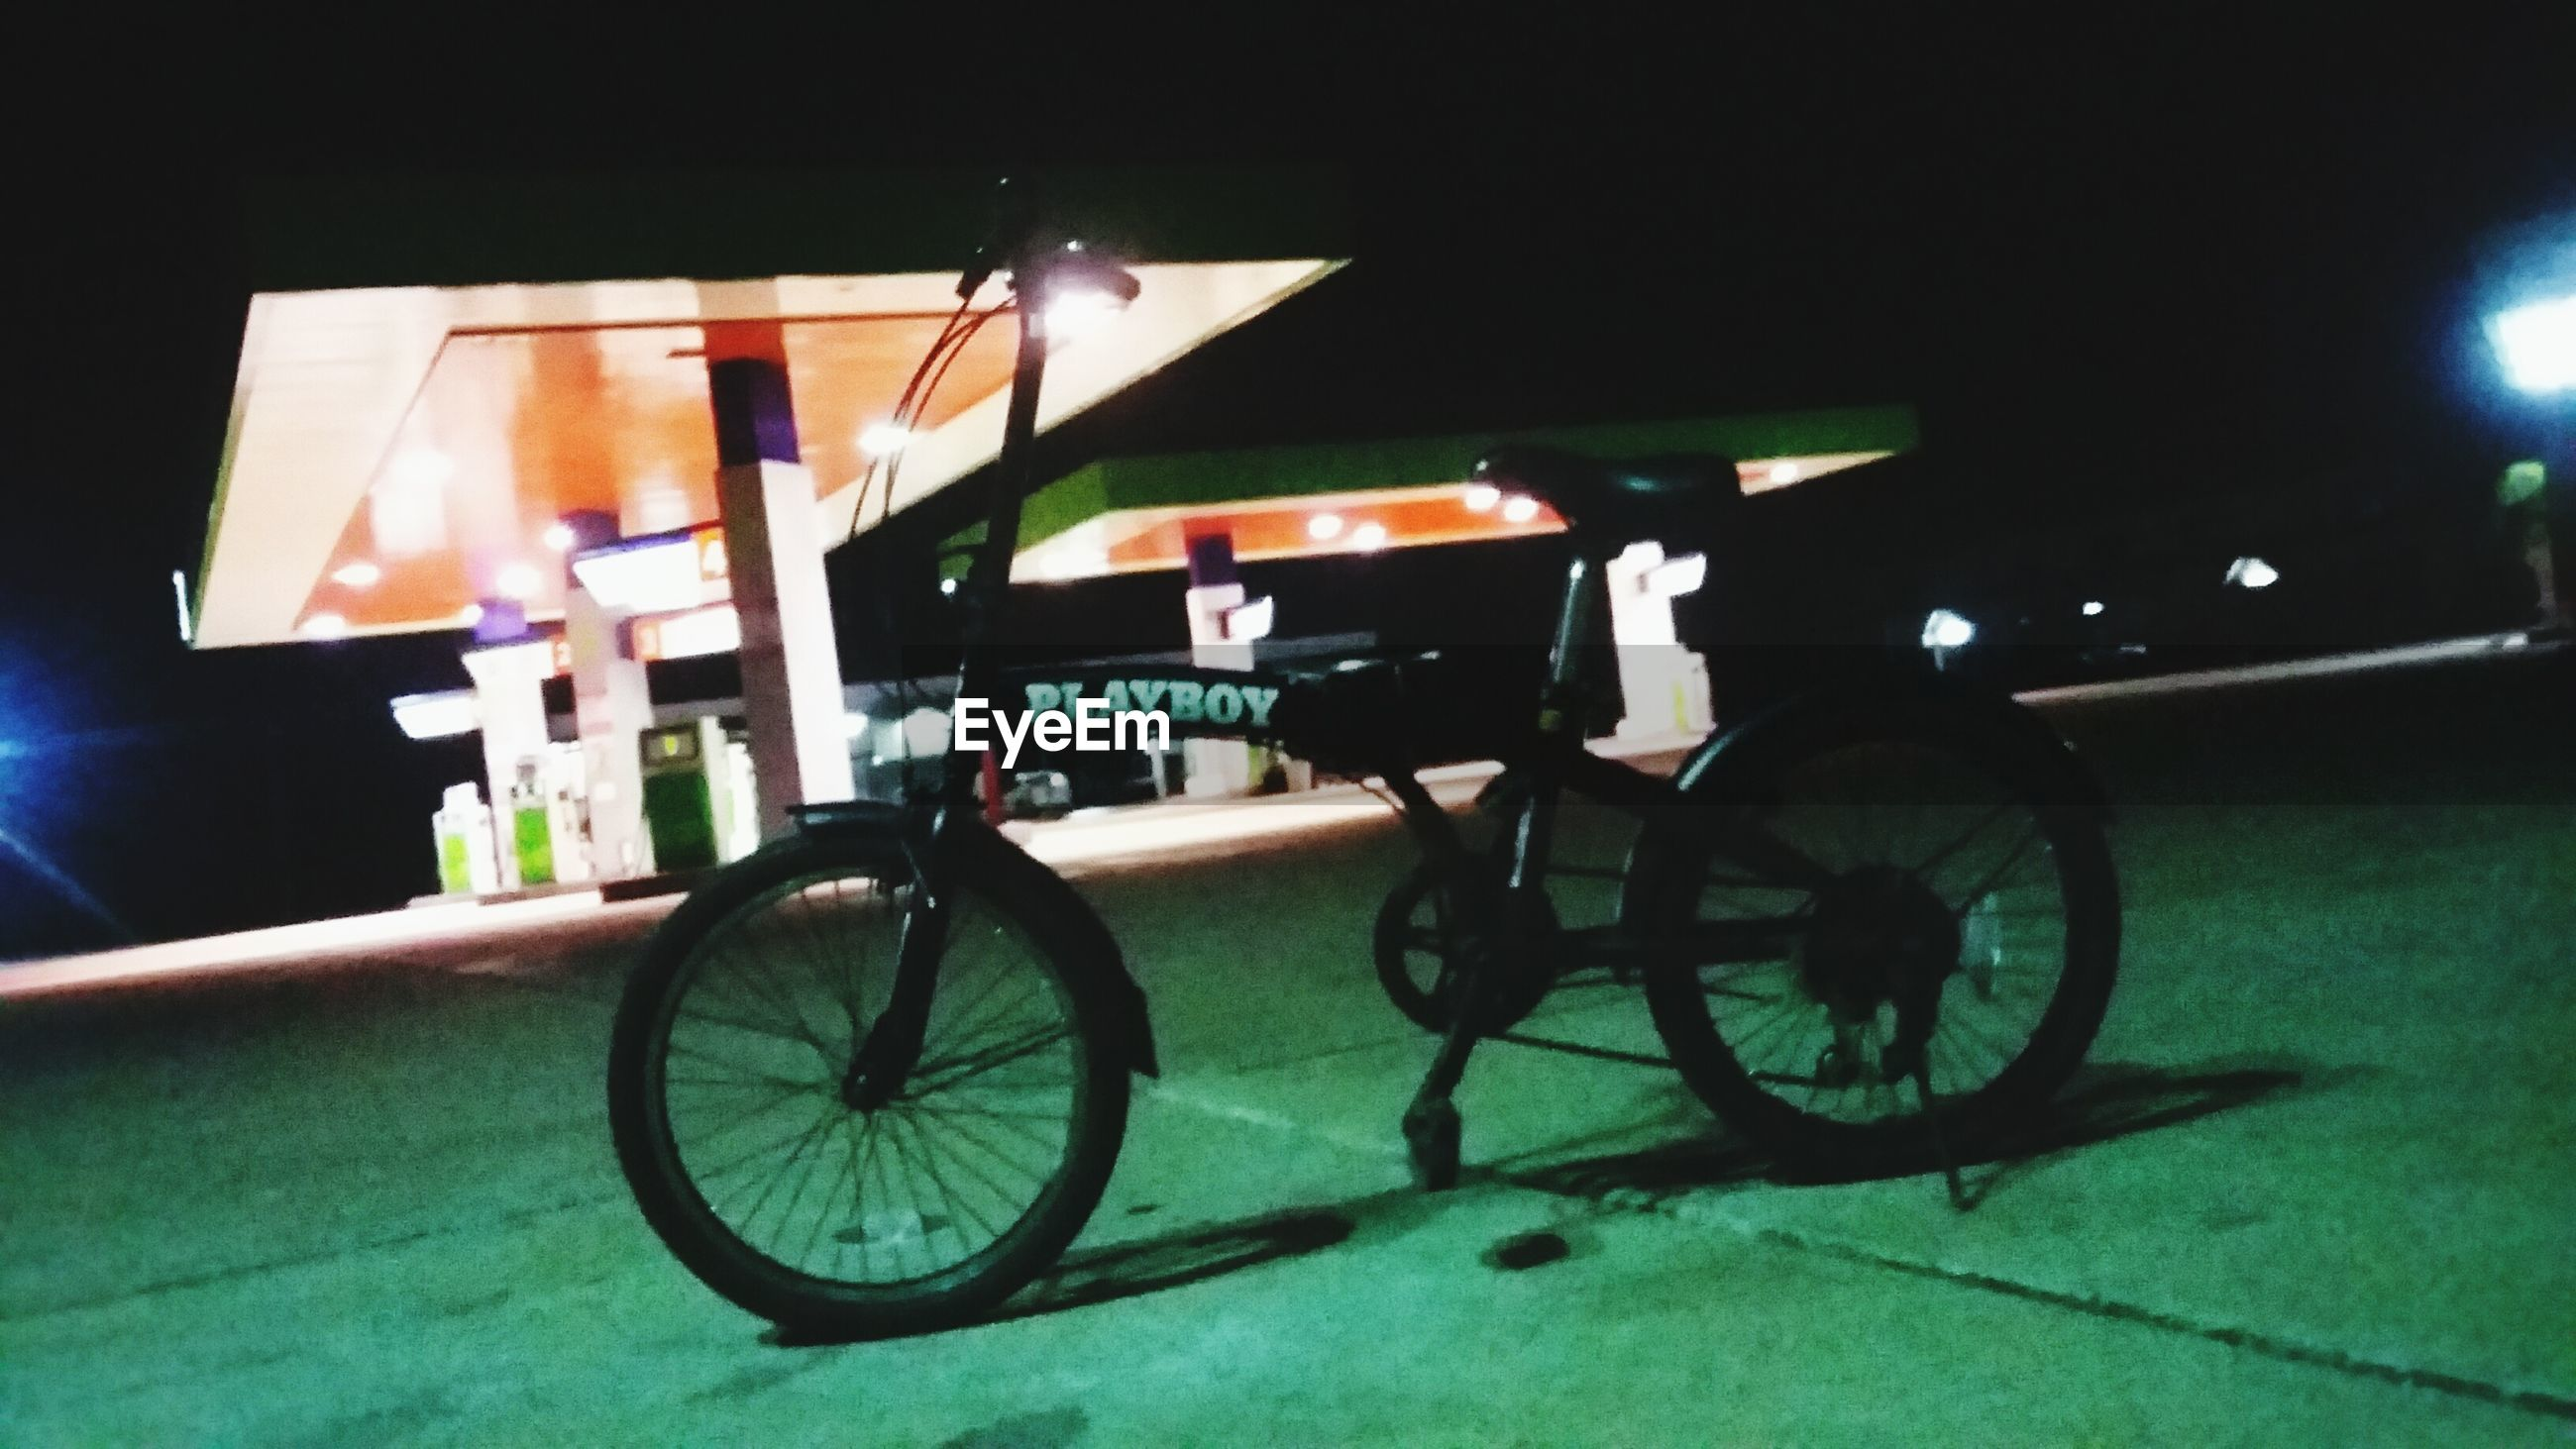 transportation, mode of transport, land vehicle, bicycle, stationary, parking, parked, car, street, night, travel, motorcycle, road, no people, parking lot, sunlight, illuminated, outdoors, wheel, side view